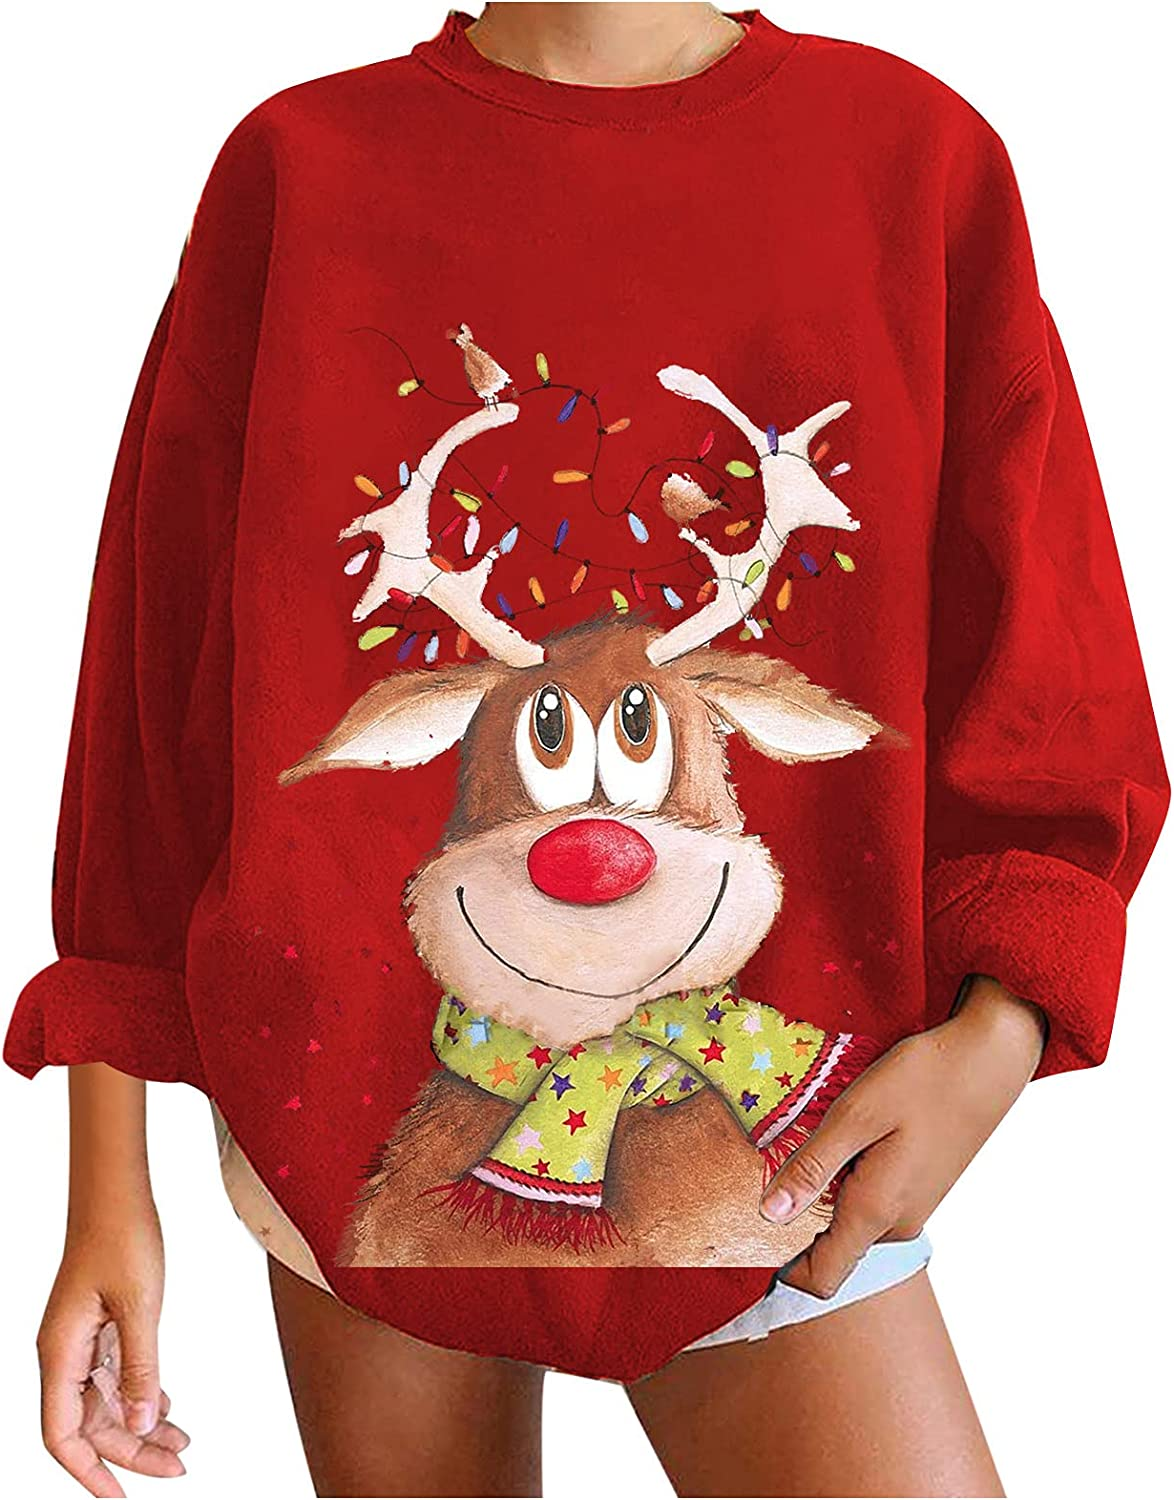 Christmas Women'S Gifts,Pullover O-Neck Tops Winter Festival Printed Long Sleeve Sweatshirt Ladies Casual T-Shirt Blouses